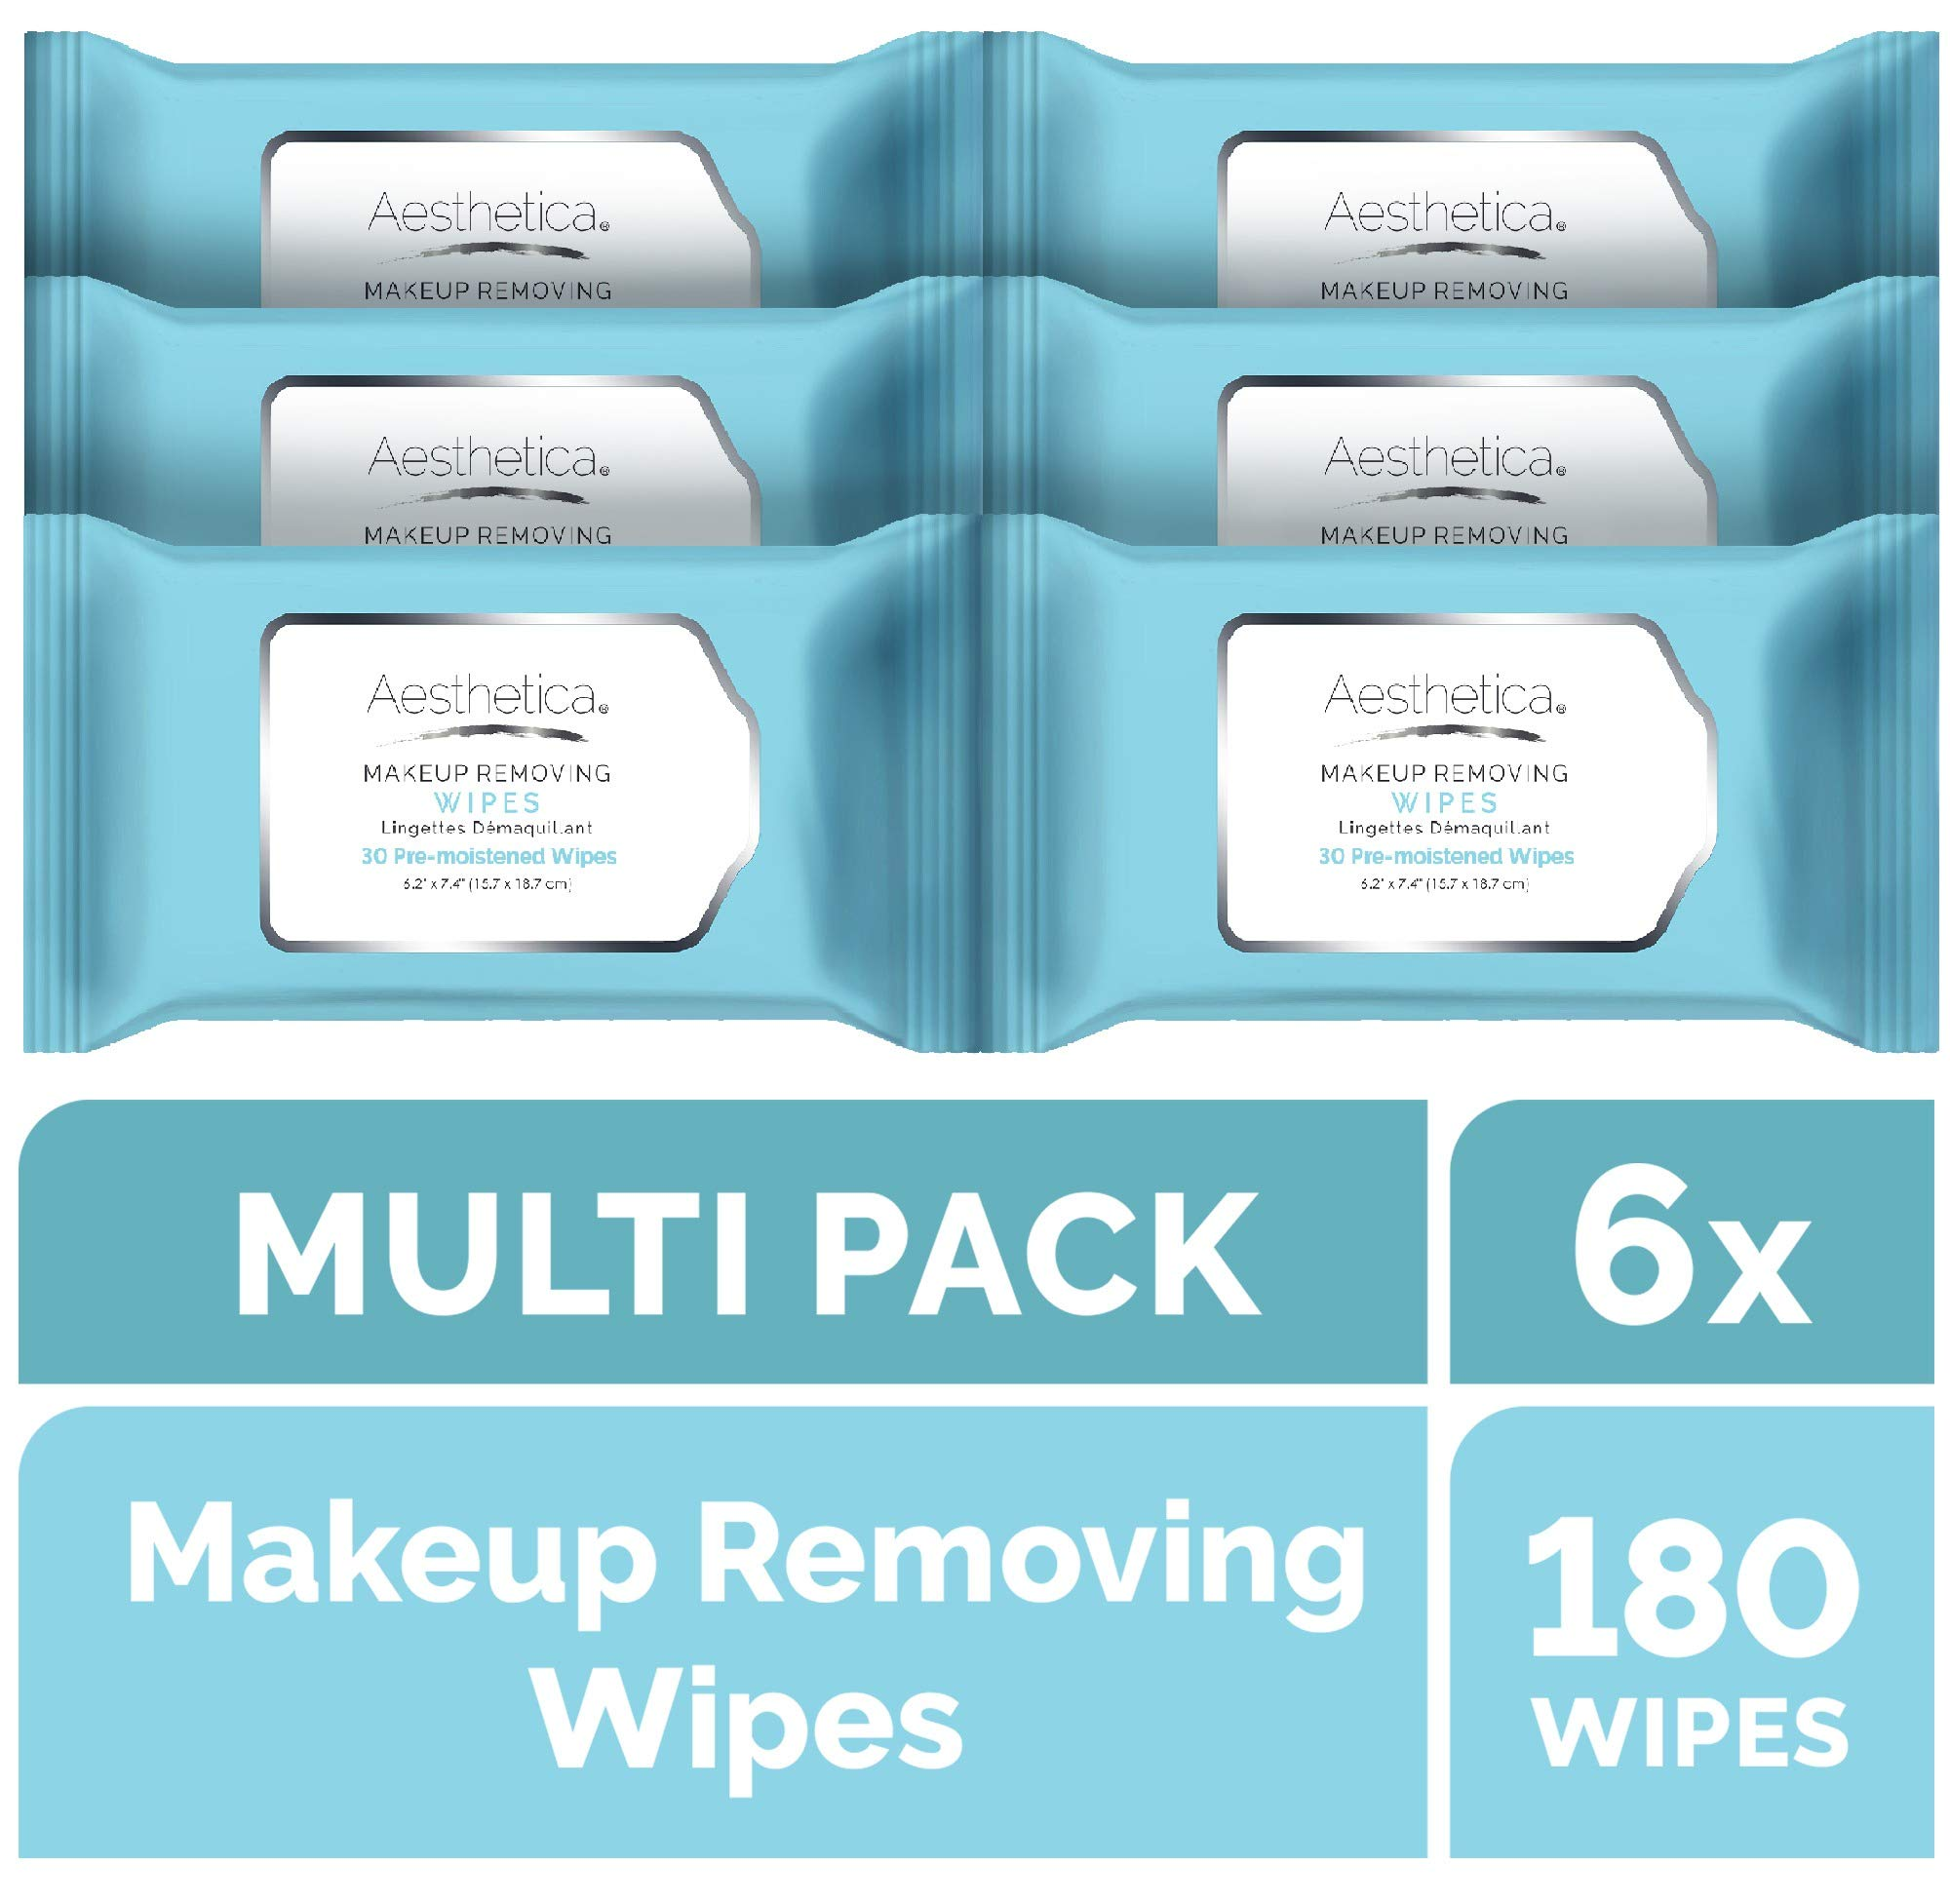 Aesthetica Makeup Removing Wipes - Facial & Eye Makeup Remover Wipes - 6 Pack Bulk (180 Wipes Total) Hypoallergenic & Dermatologist Tested - Oil & Fragrance Free - Made in USA by Aesthetica